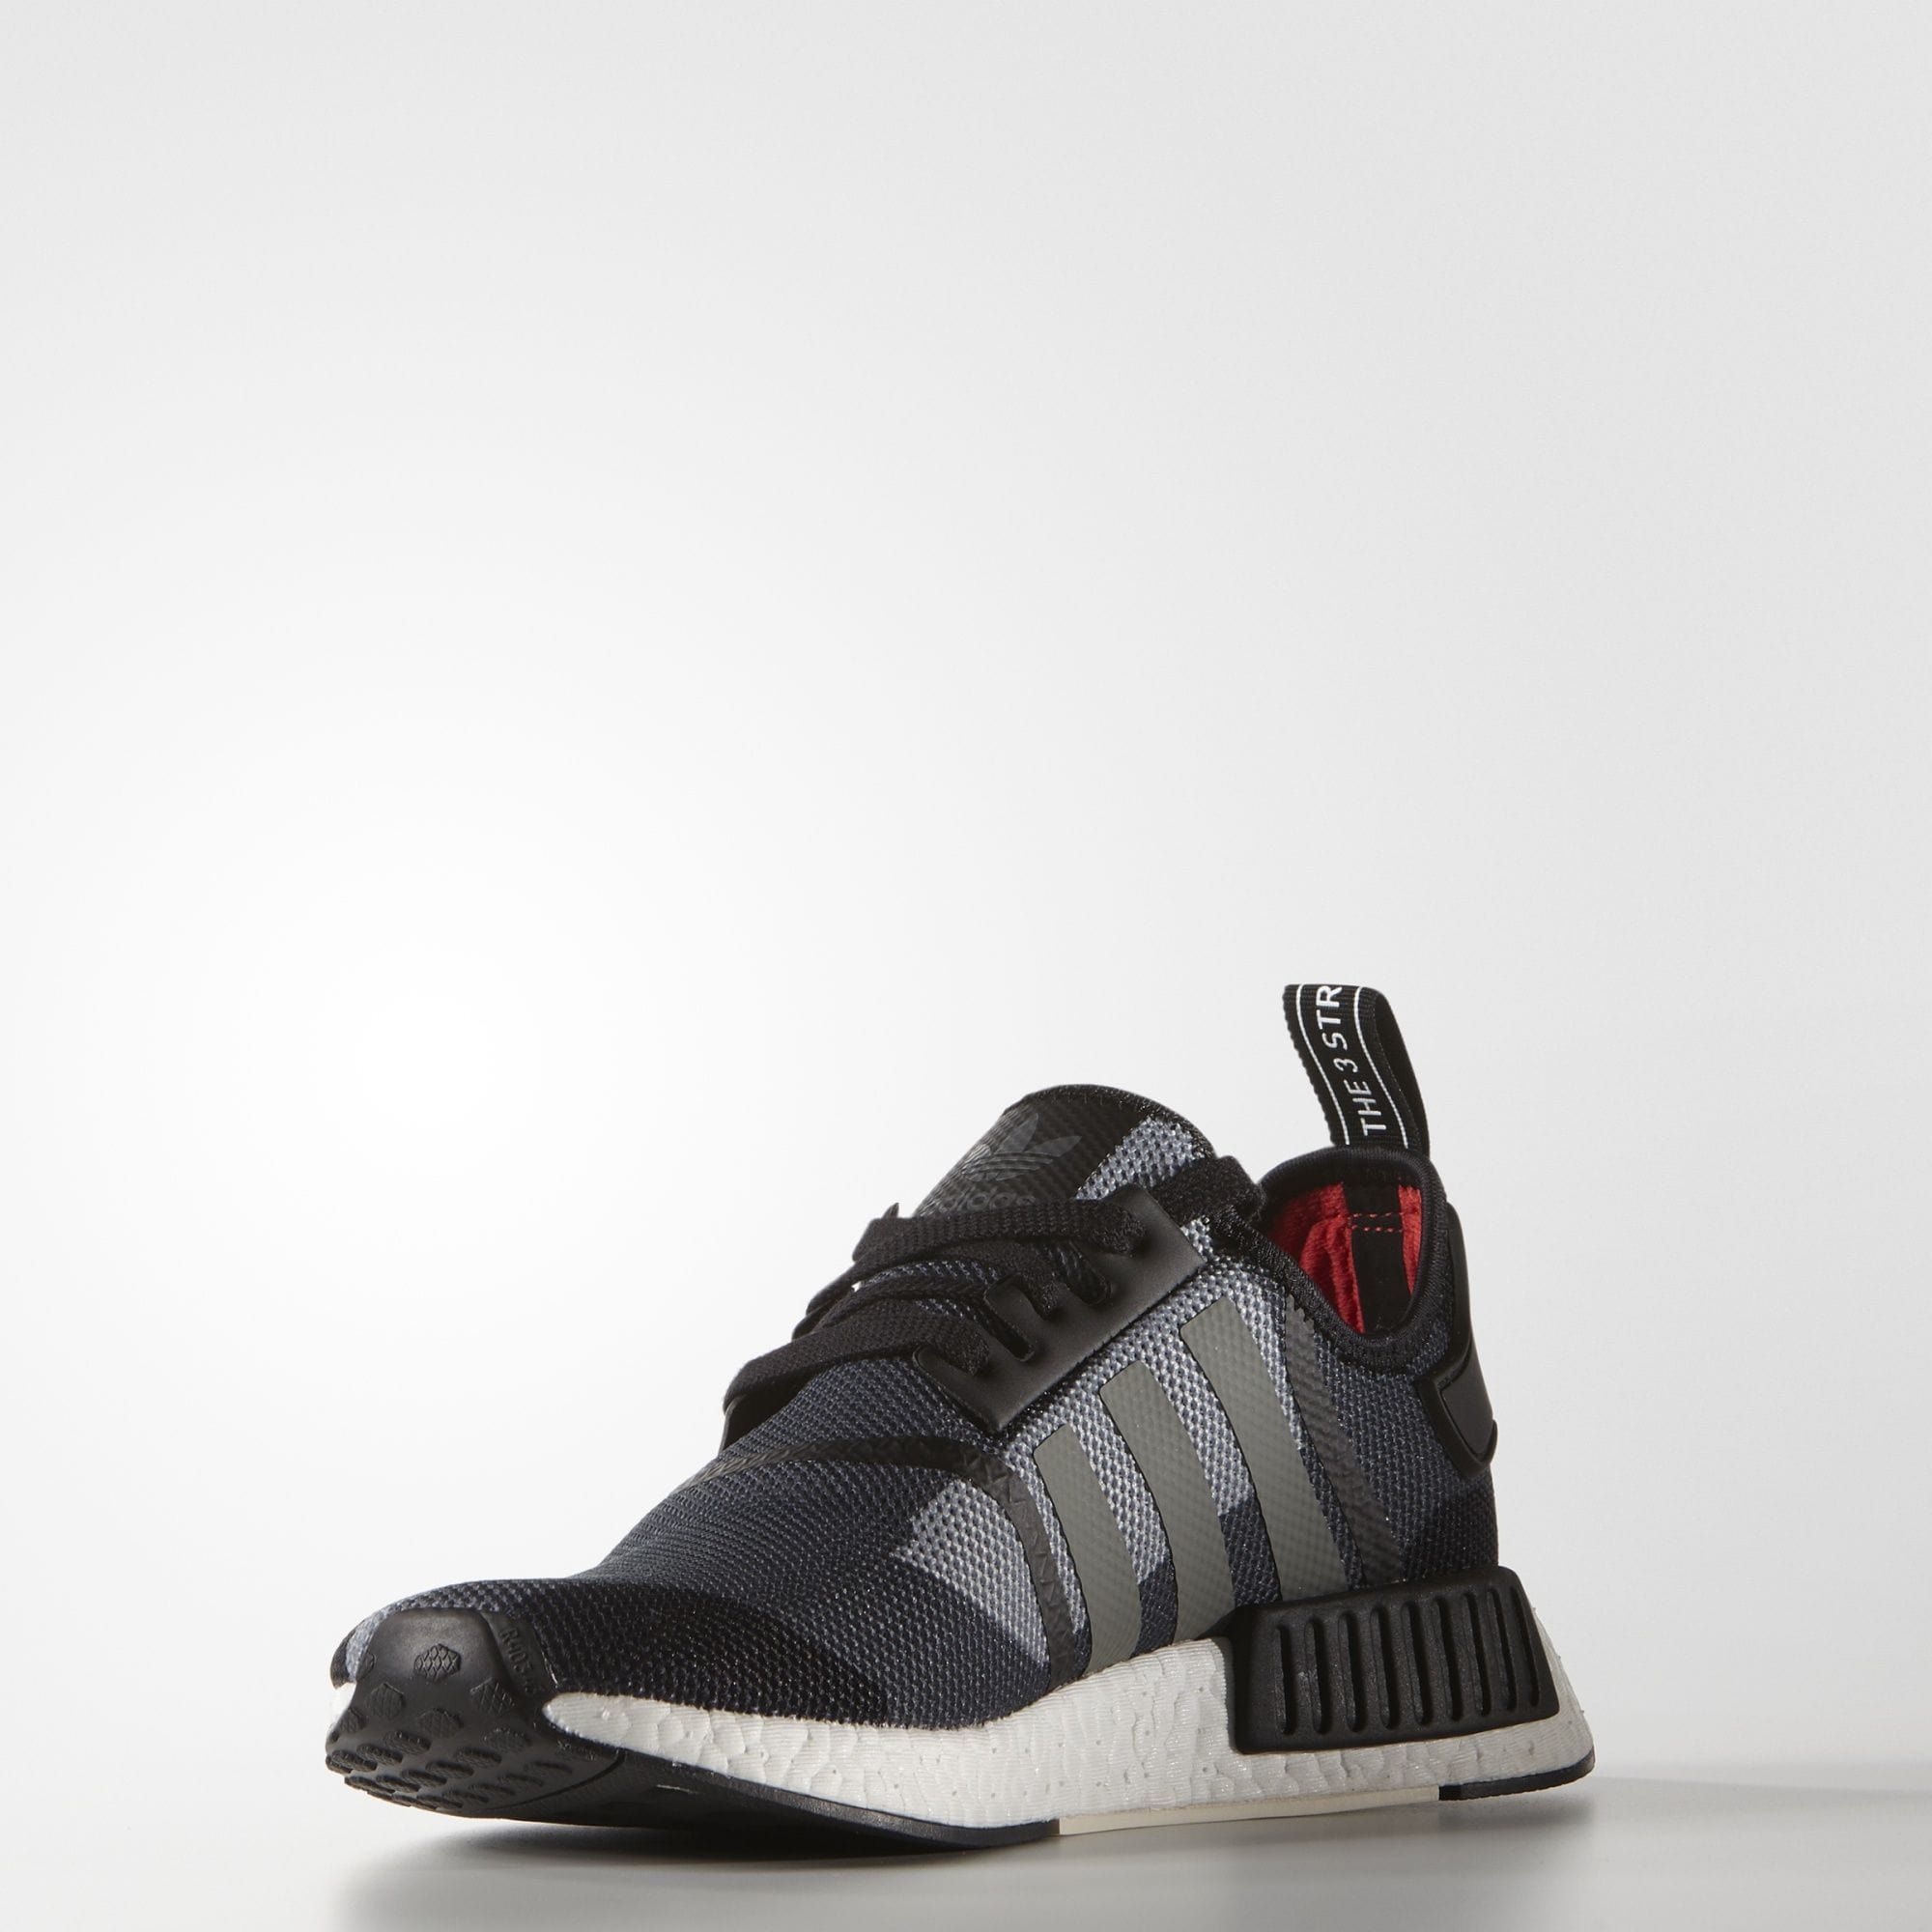 ADIDAS NMD R1 - Core Black Chalk White - Kick Game